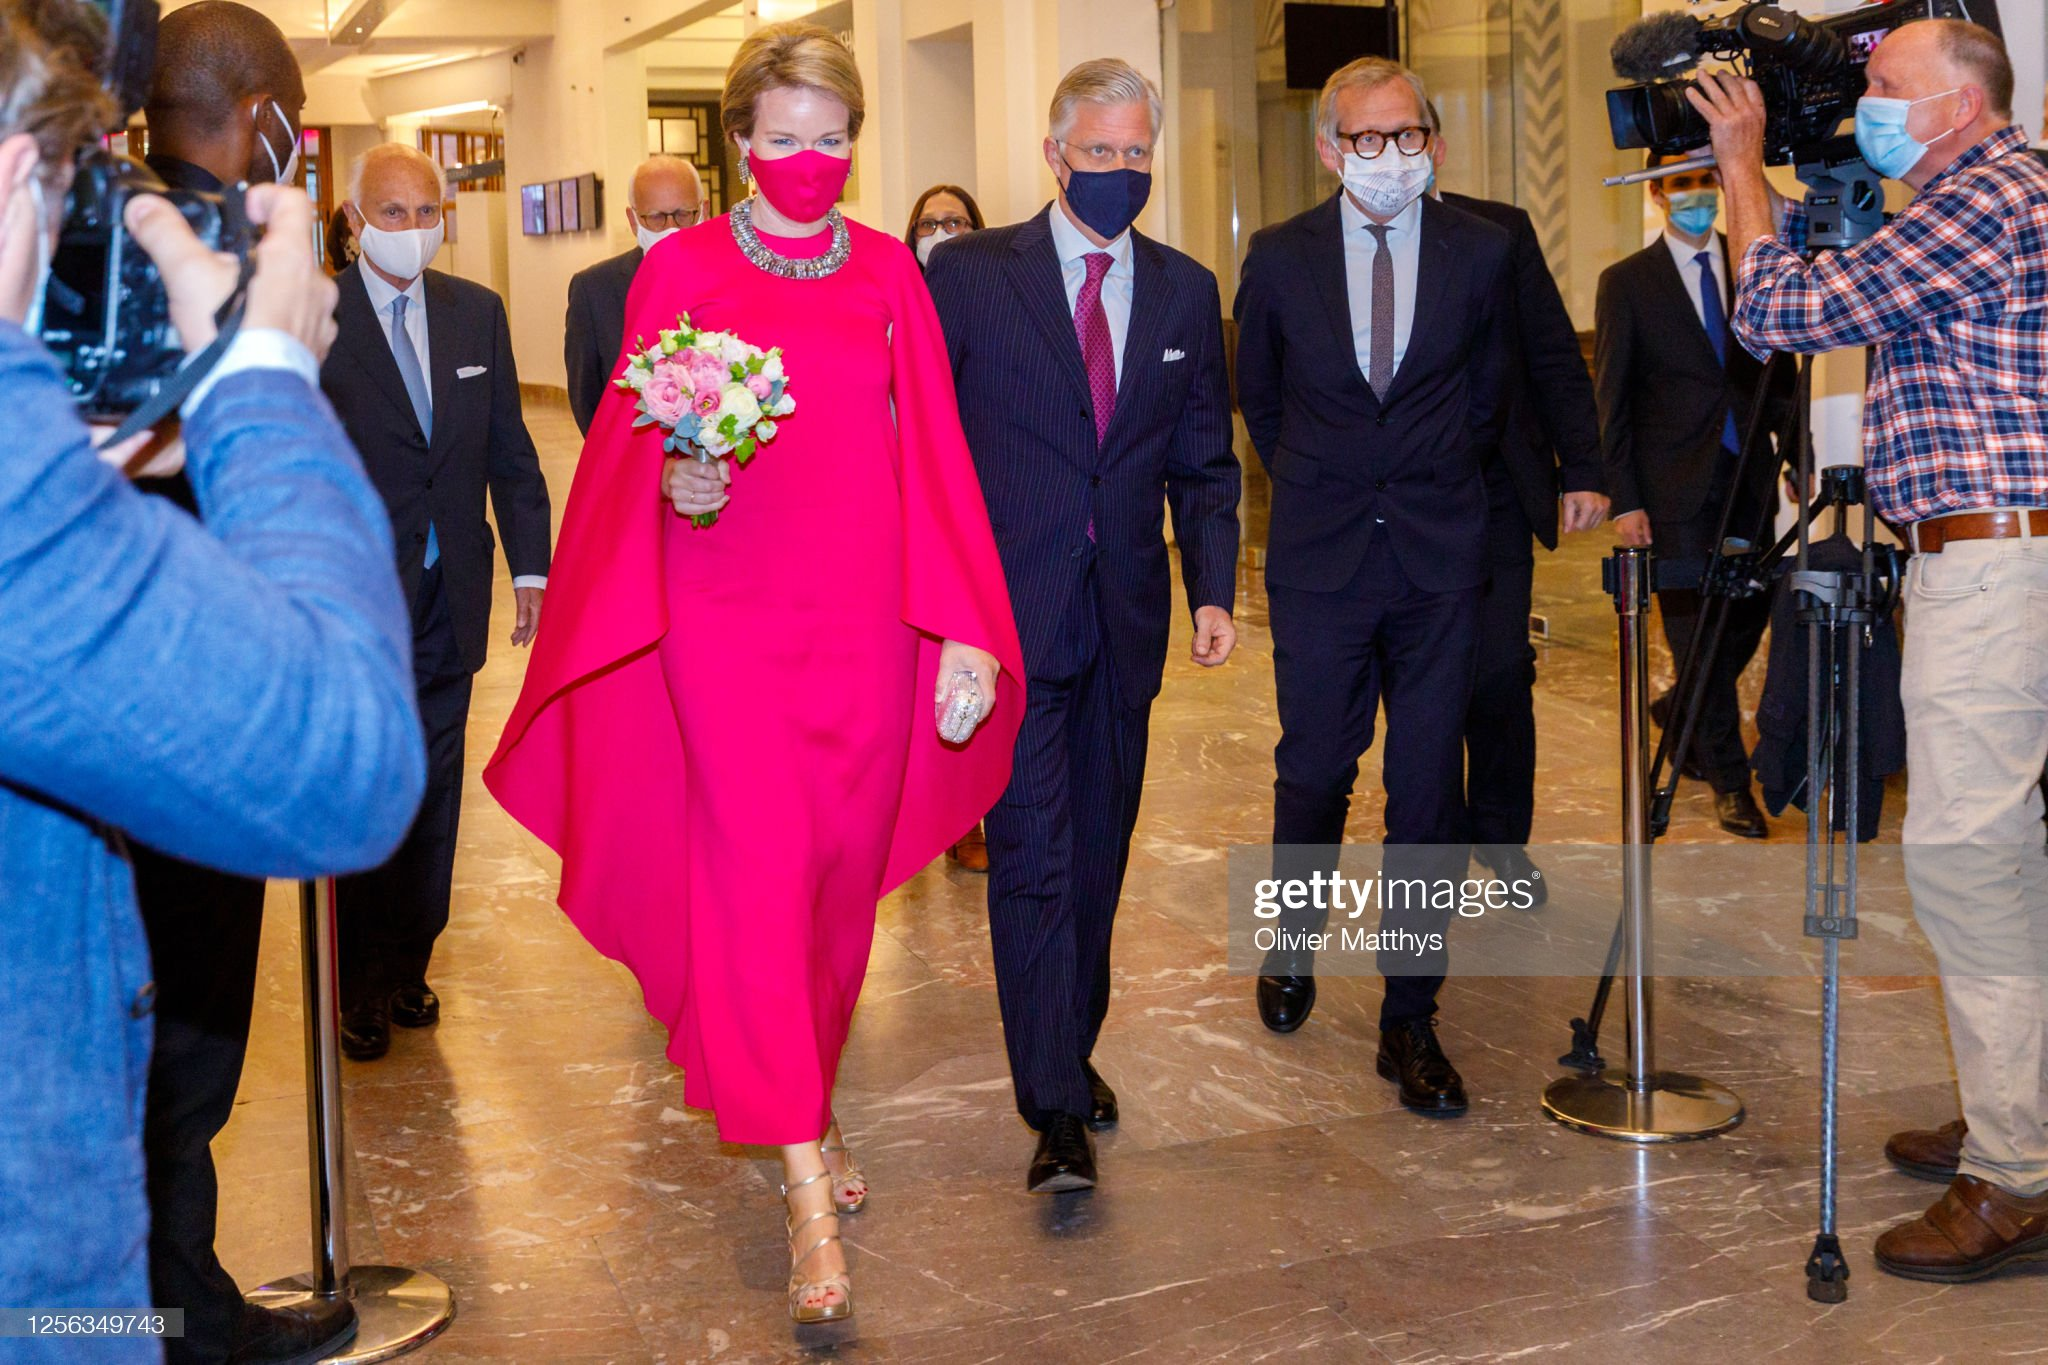 Belgium Royal Family Attends The Preludium To The National Day Concert At The Bozar Palace For Fine Arts In Brussels : News Photo